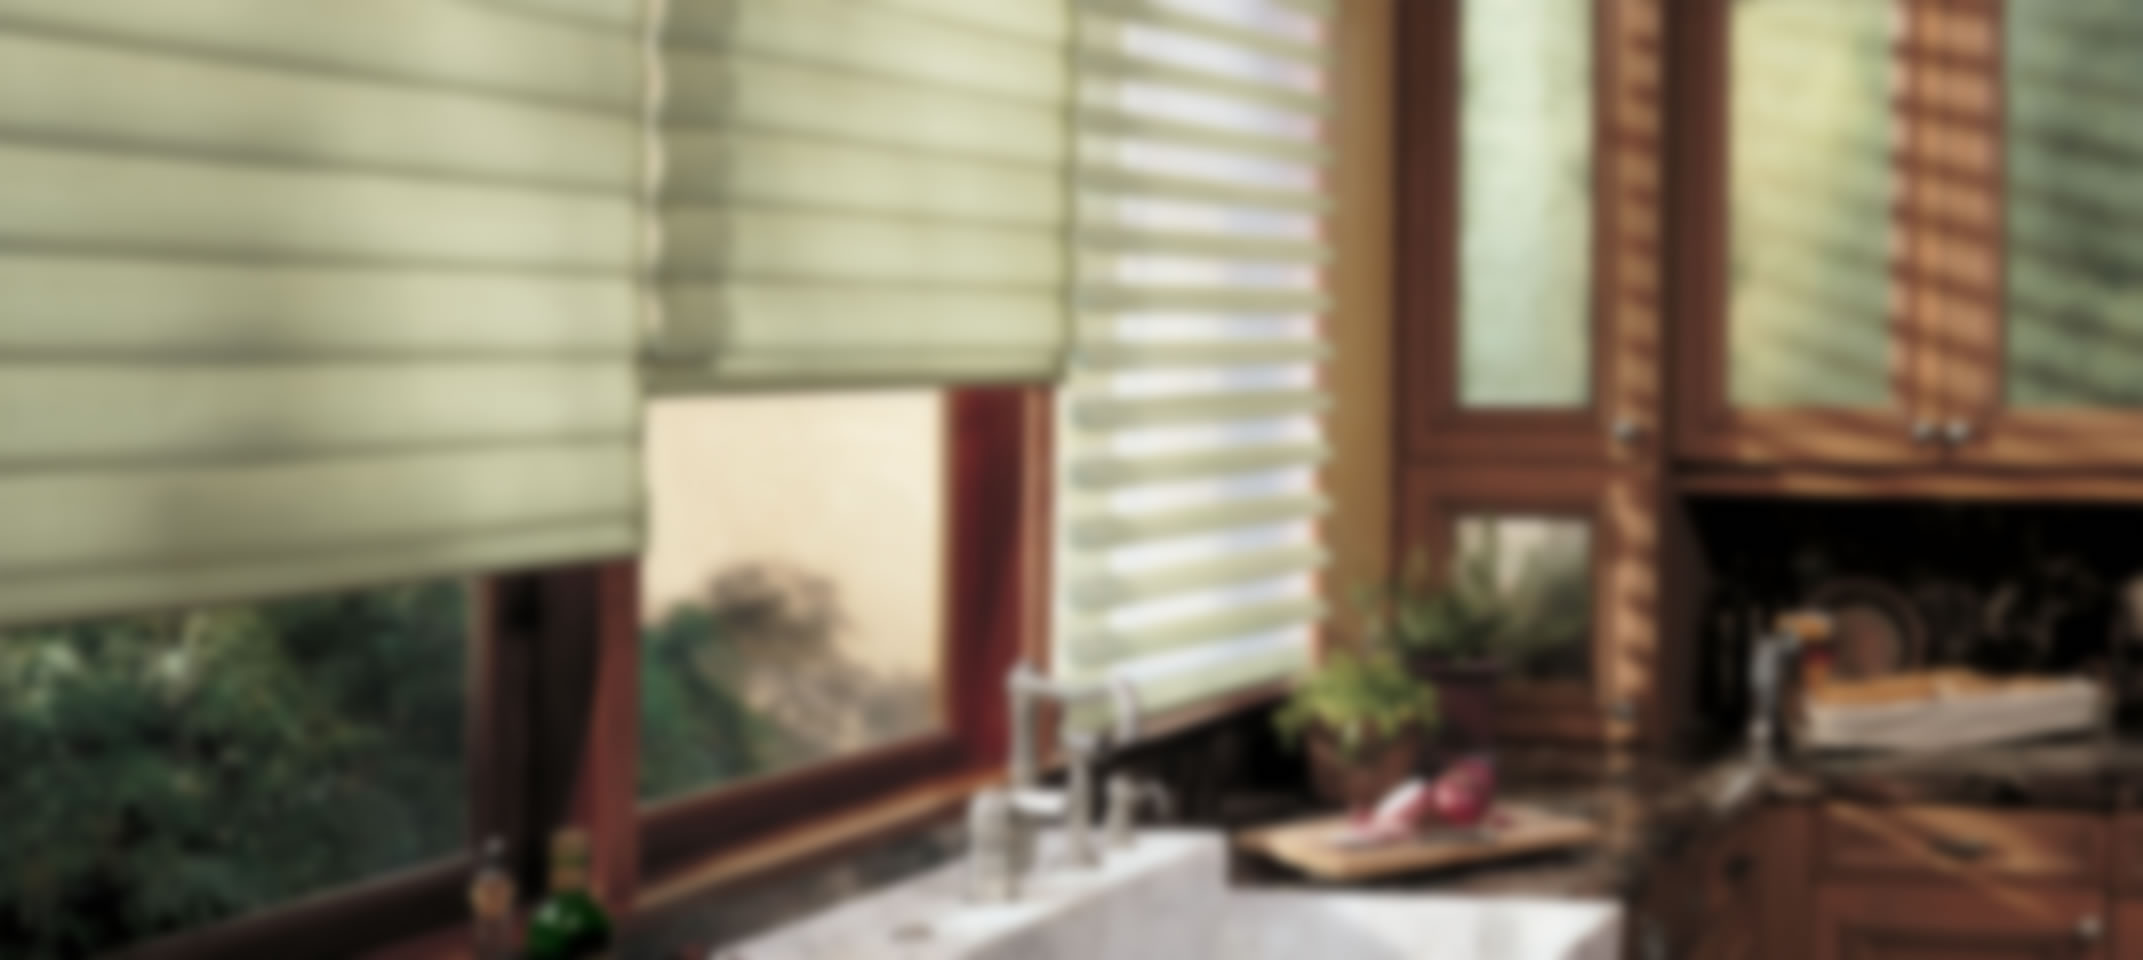 north blind wales stores hillarysblinds and near blinds website the lloyds me to in cheshire welcome